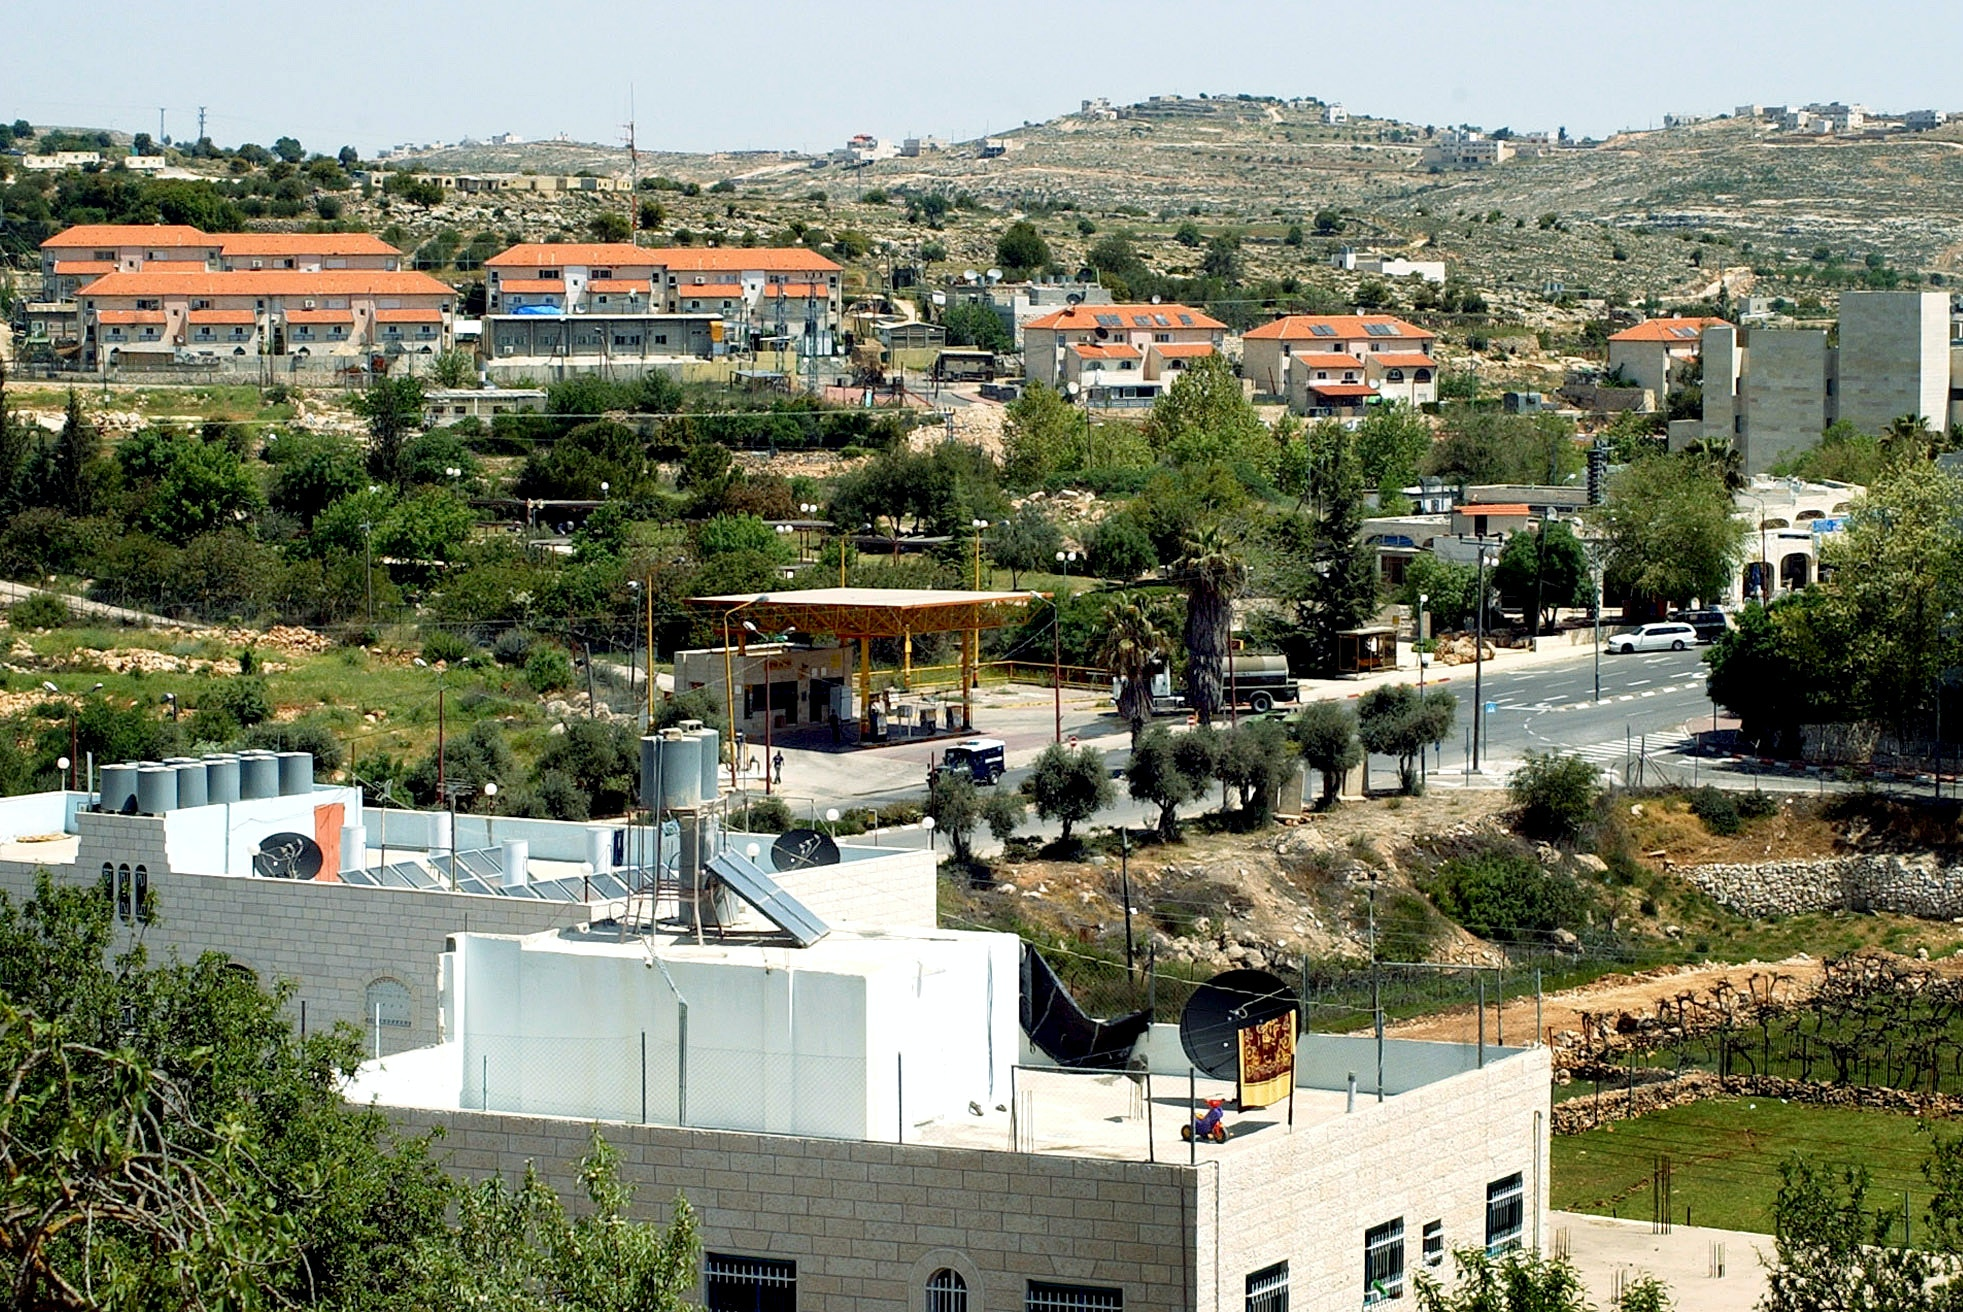 "This is a partial view of the southern West Bank Jewish settlement of Kiryat Arba, adjacent to the Palestinian city of Hebron, Tuesday April 13, 2004. In the foreground there are Palestinians houses in Hebron, and in the hilltops, background, there are closeby Palestinian villages. Israeli Prime Minister Ariel Sharon disclosed the final element of his ""disengangement"" plan late Monday just hours before his departure for the United States, naming for the first time the West Bank areas he plans to keep under Israeli control, including the Kiryat Arba settlement. (AP Photo/Nasser Shiyoukhi)"